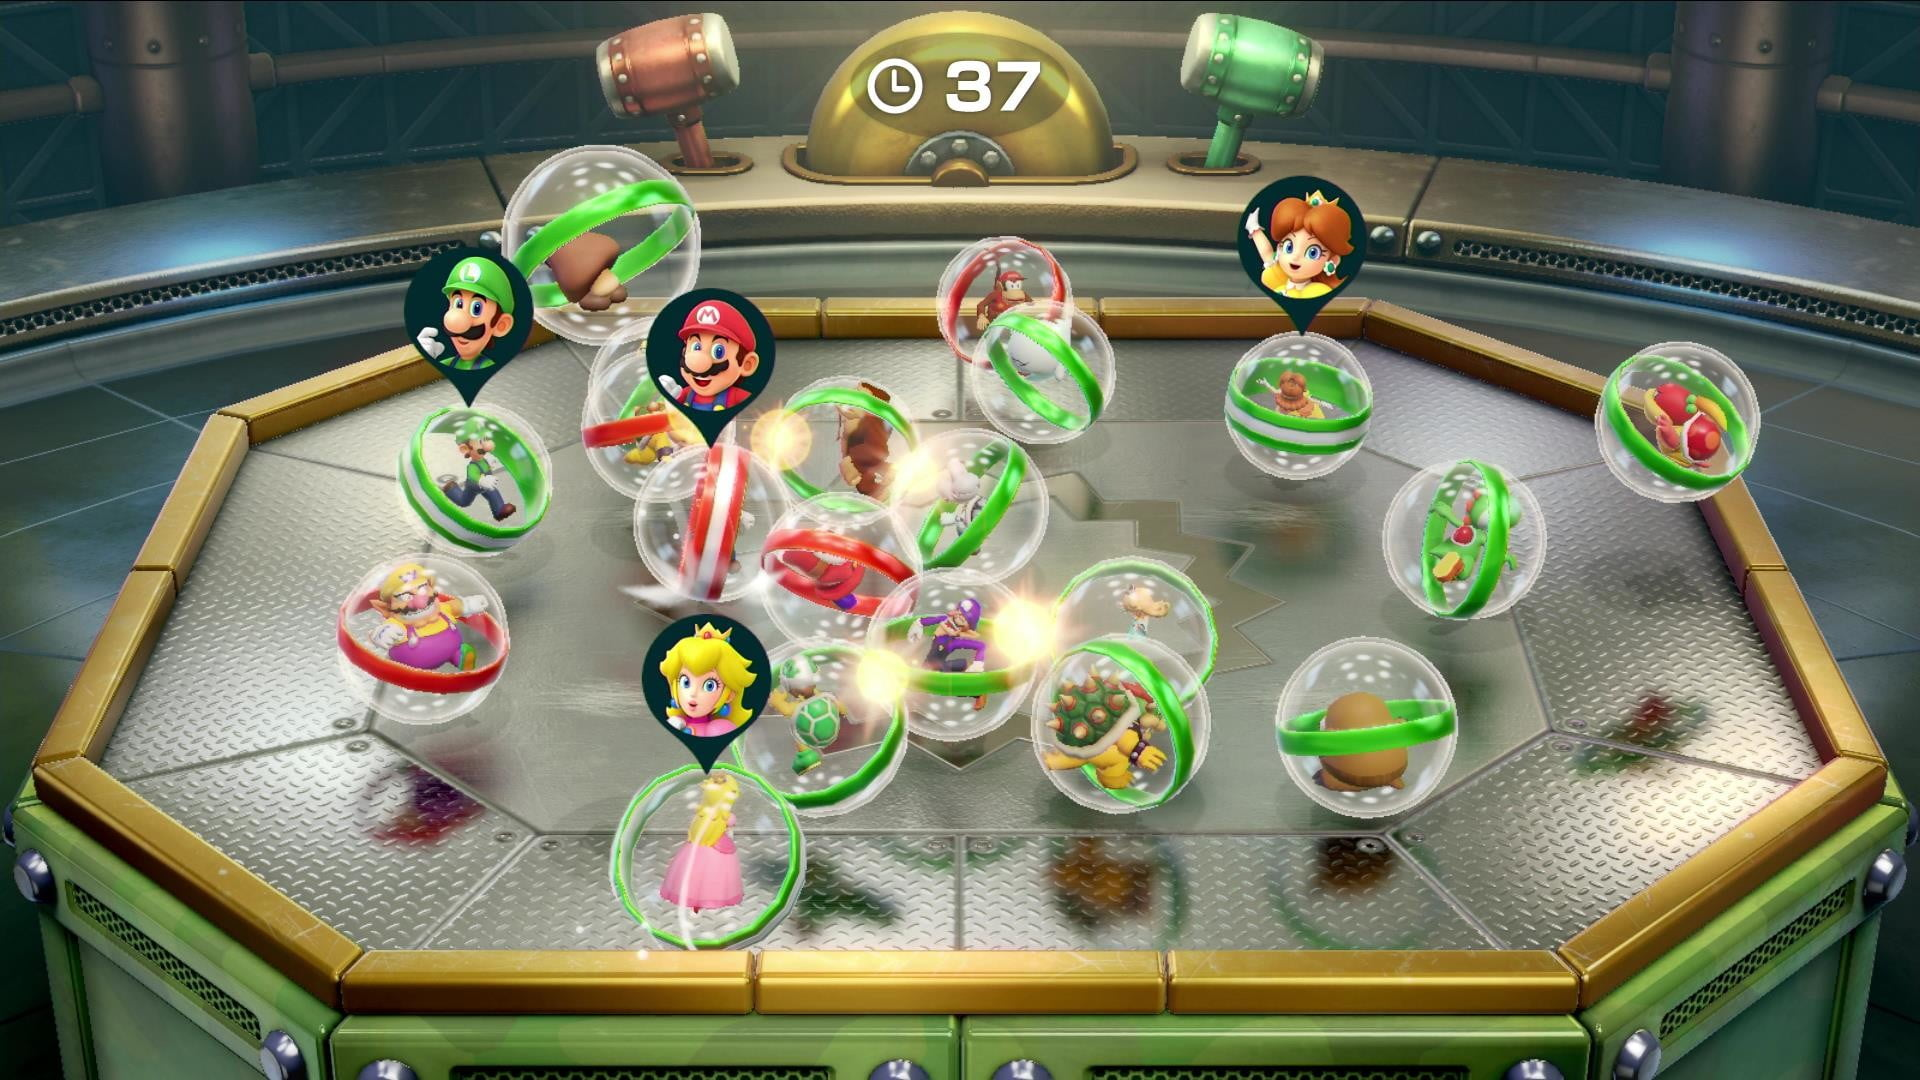 Super Mario Party gets a surprise update that expands its online play